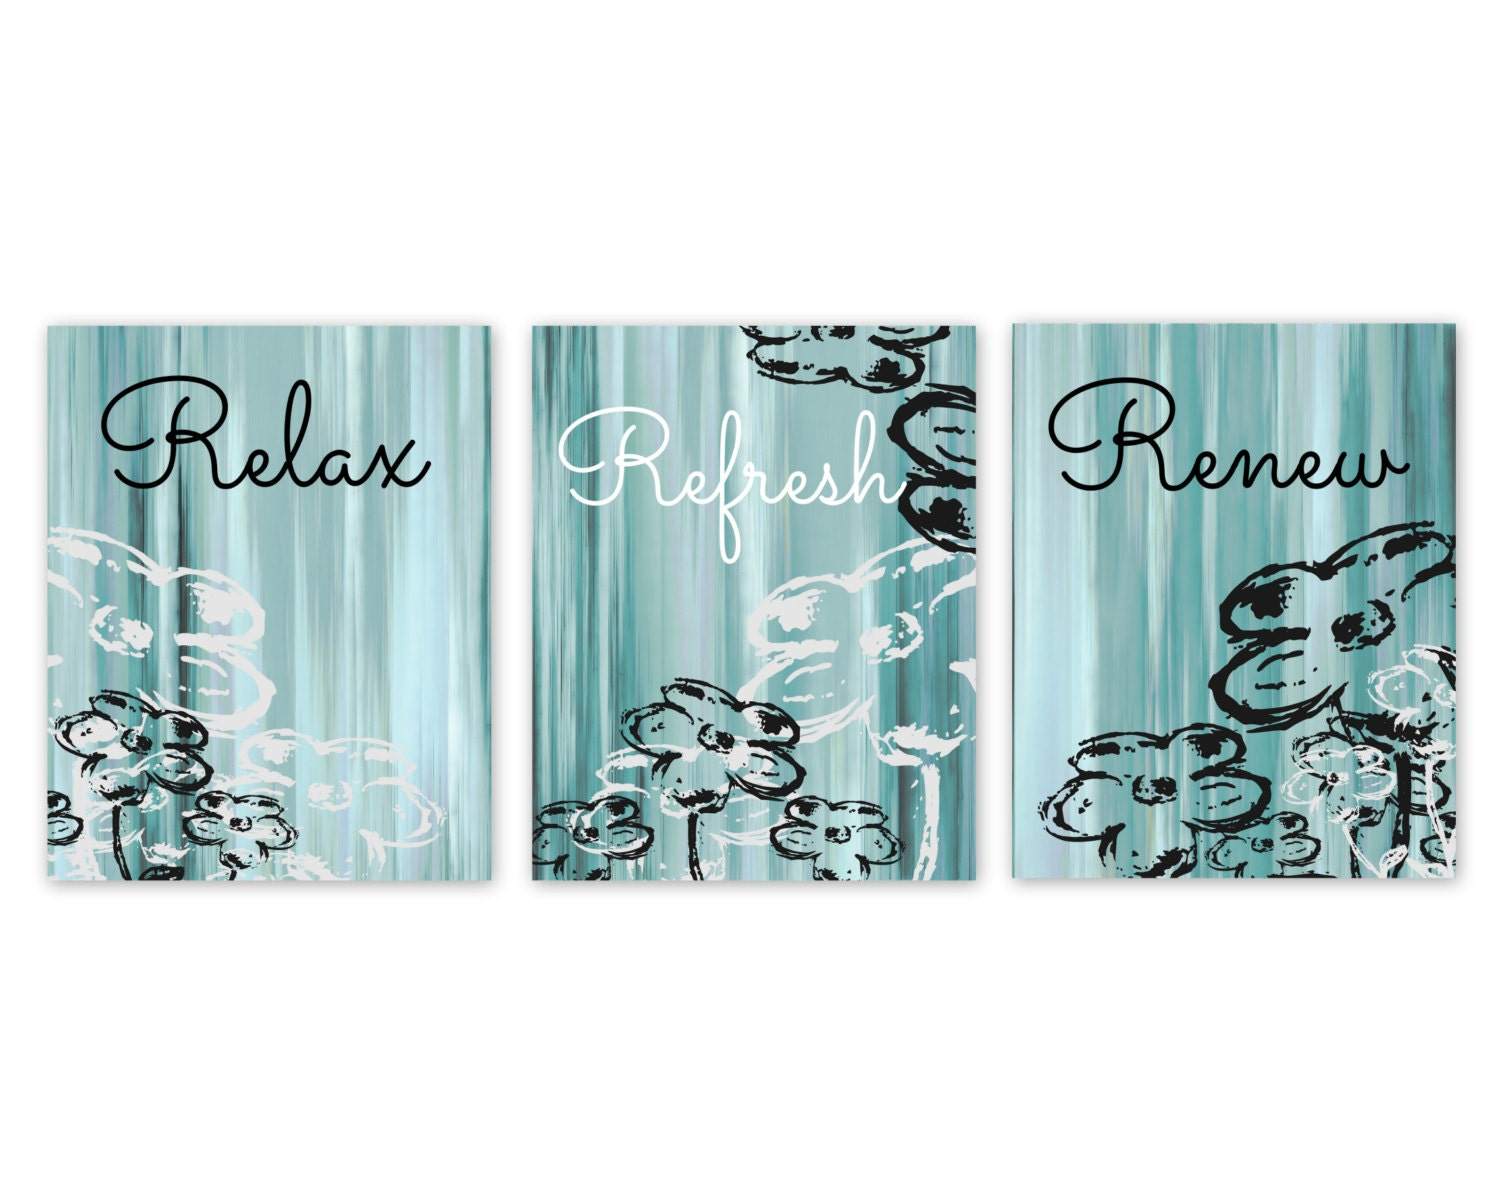 Bathroom wall decor teal bathroom decor aqua bathroom art for Teal and brown bathroom decor